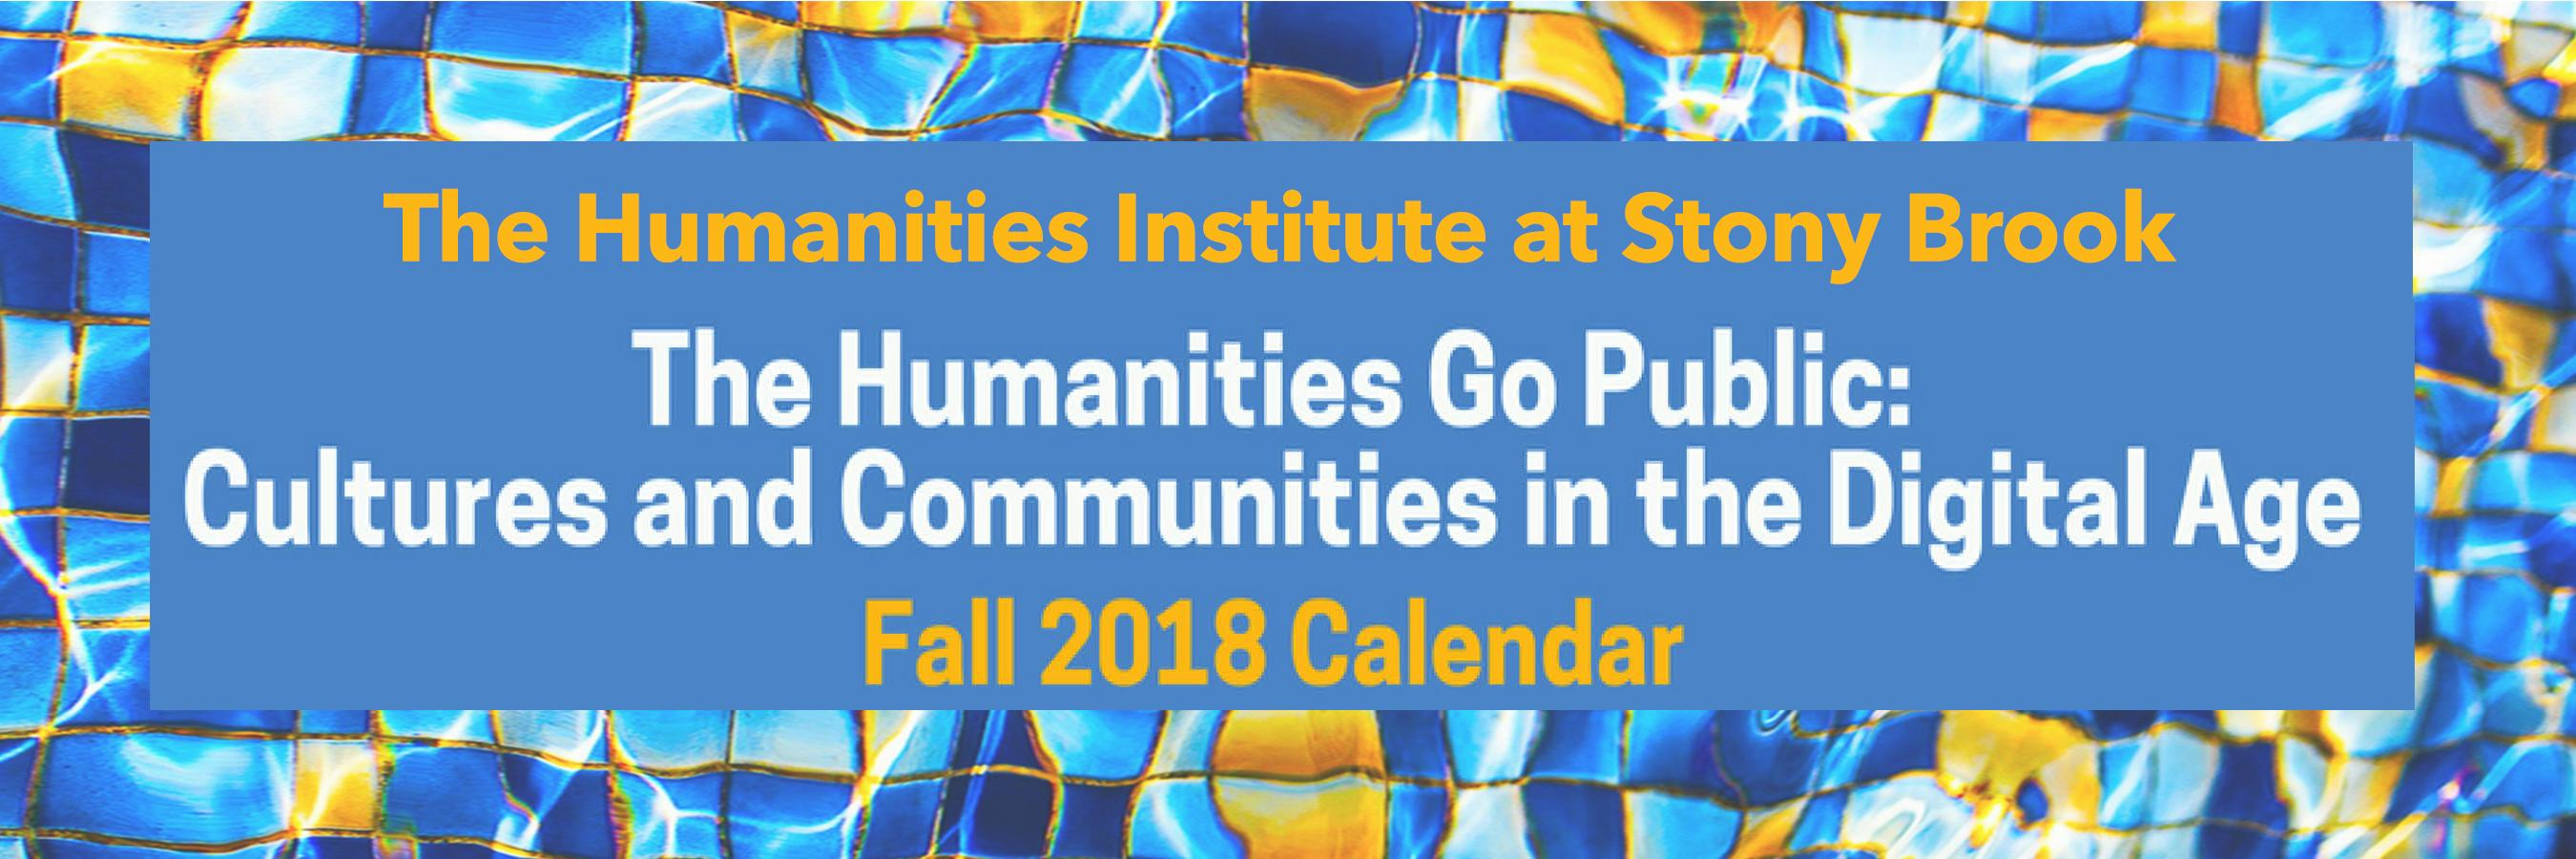 The Humanities Go Public banner